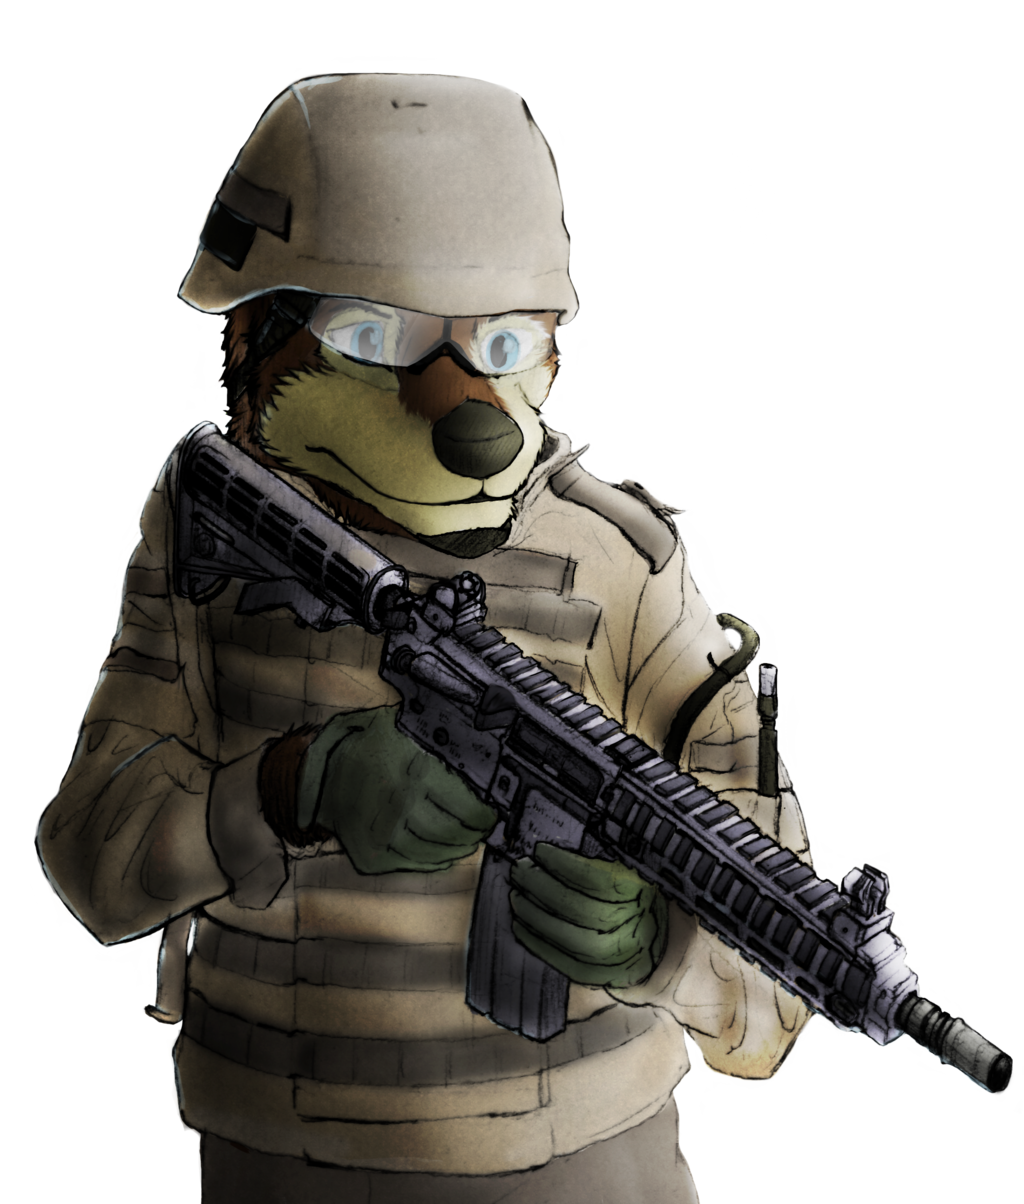 Most recent image: Tacticool Otter